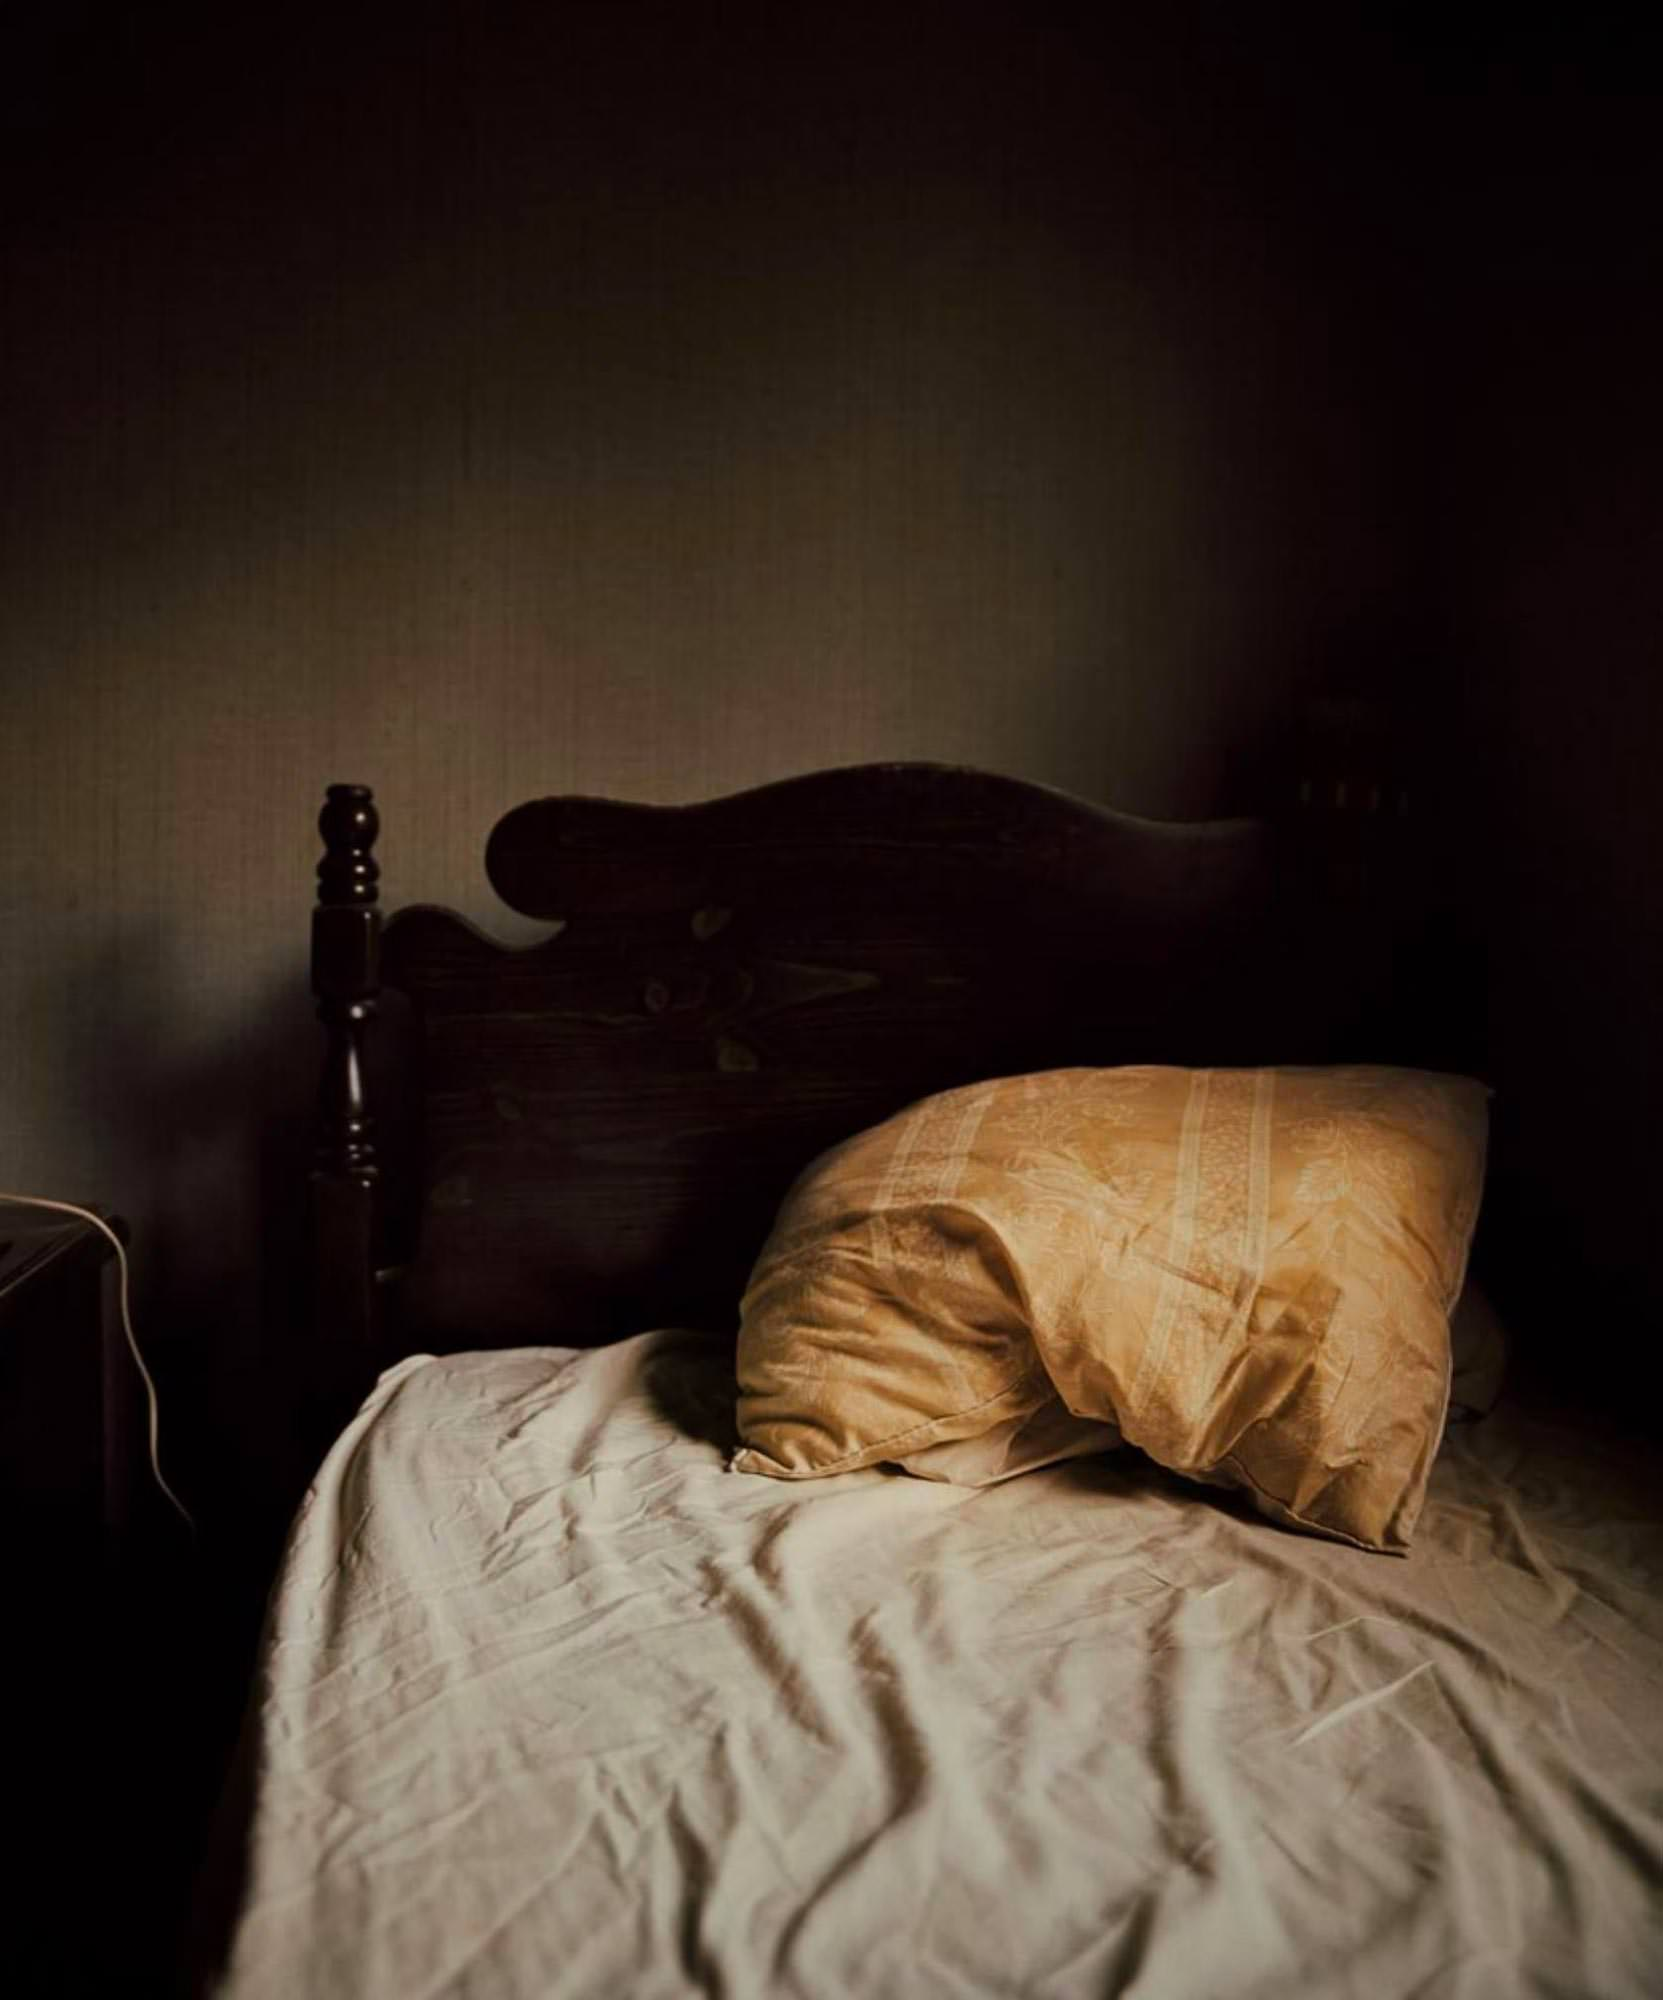 Todd Hido- Photographie #1447-A, 1994